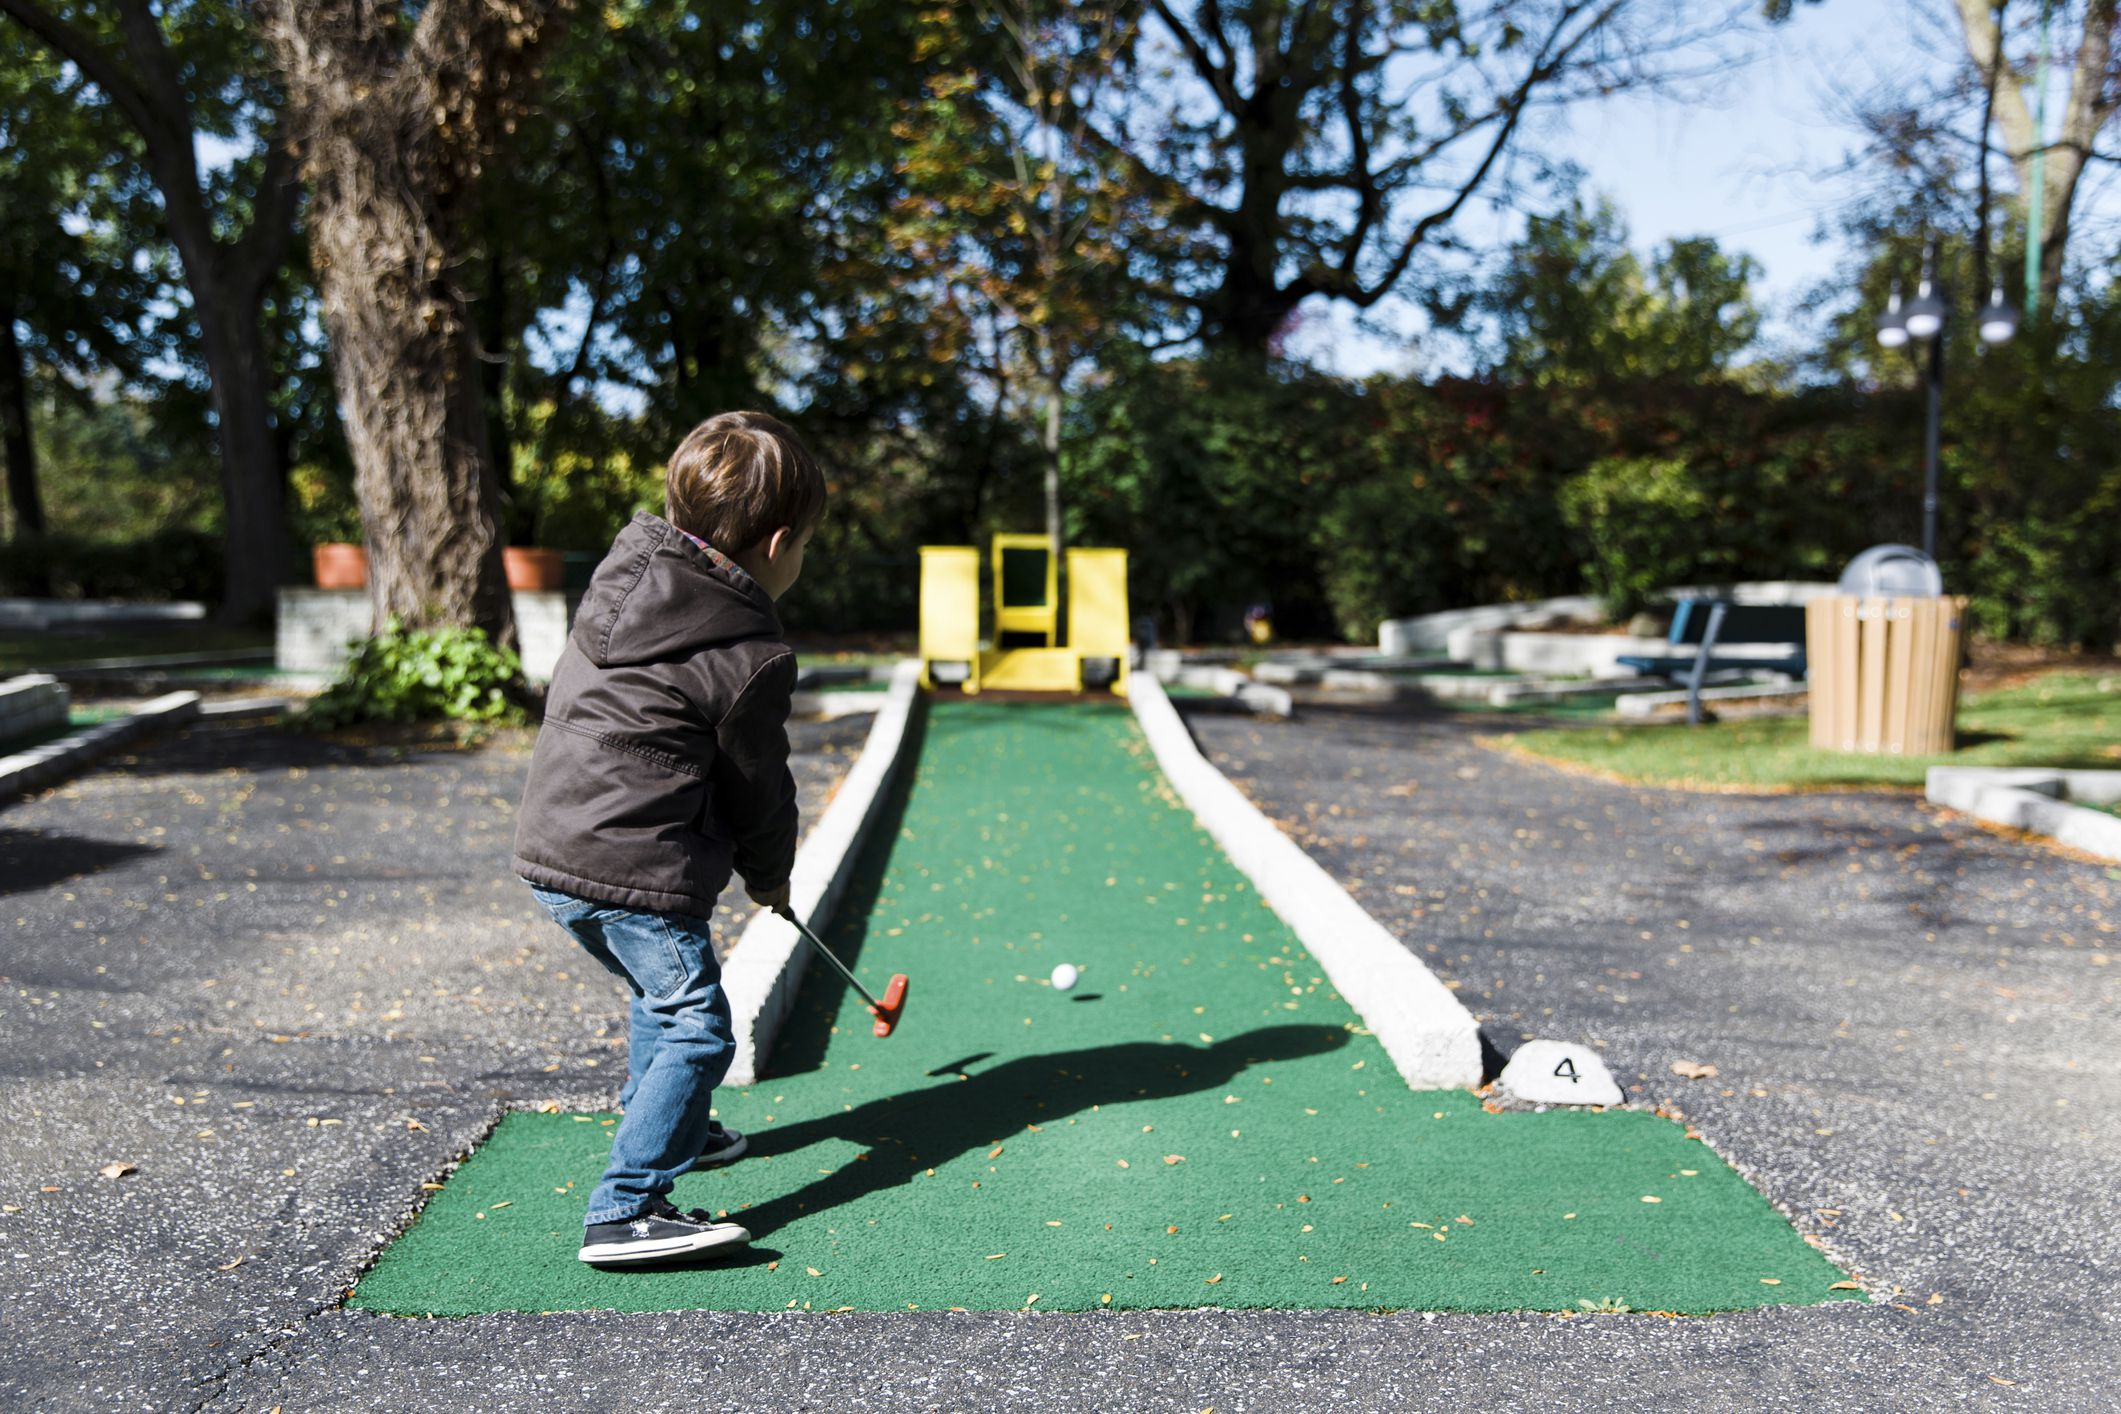 Top 5 Places to Play Miniature Golf in Oklahoma City